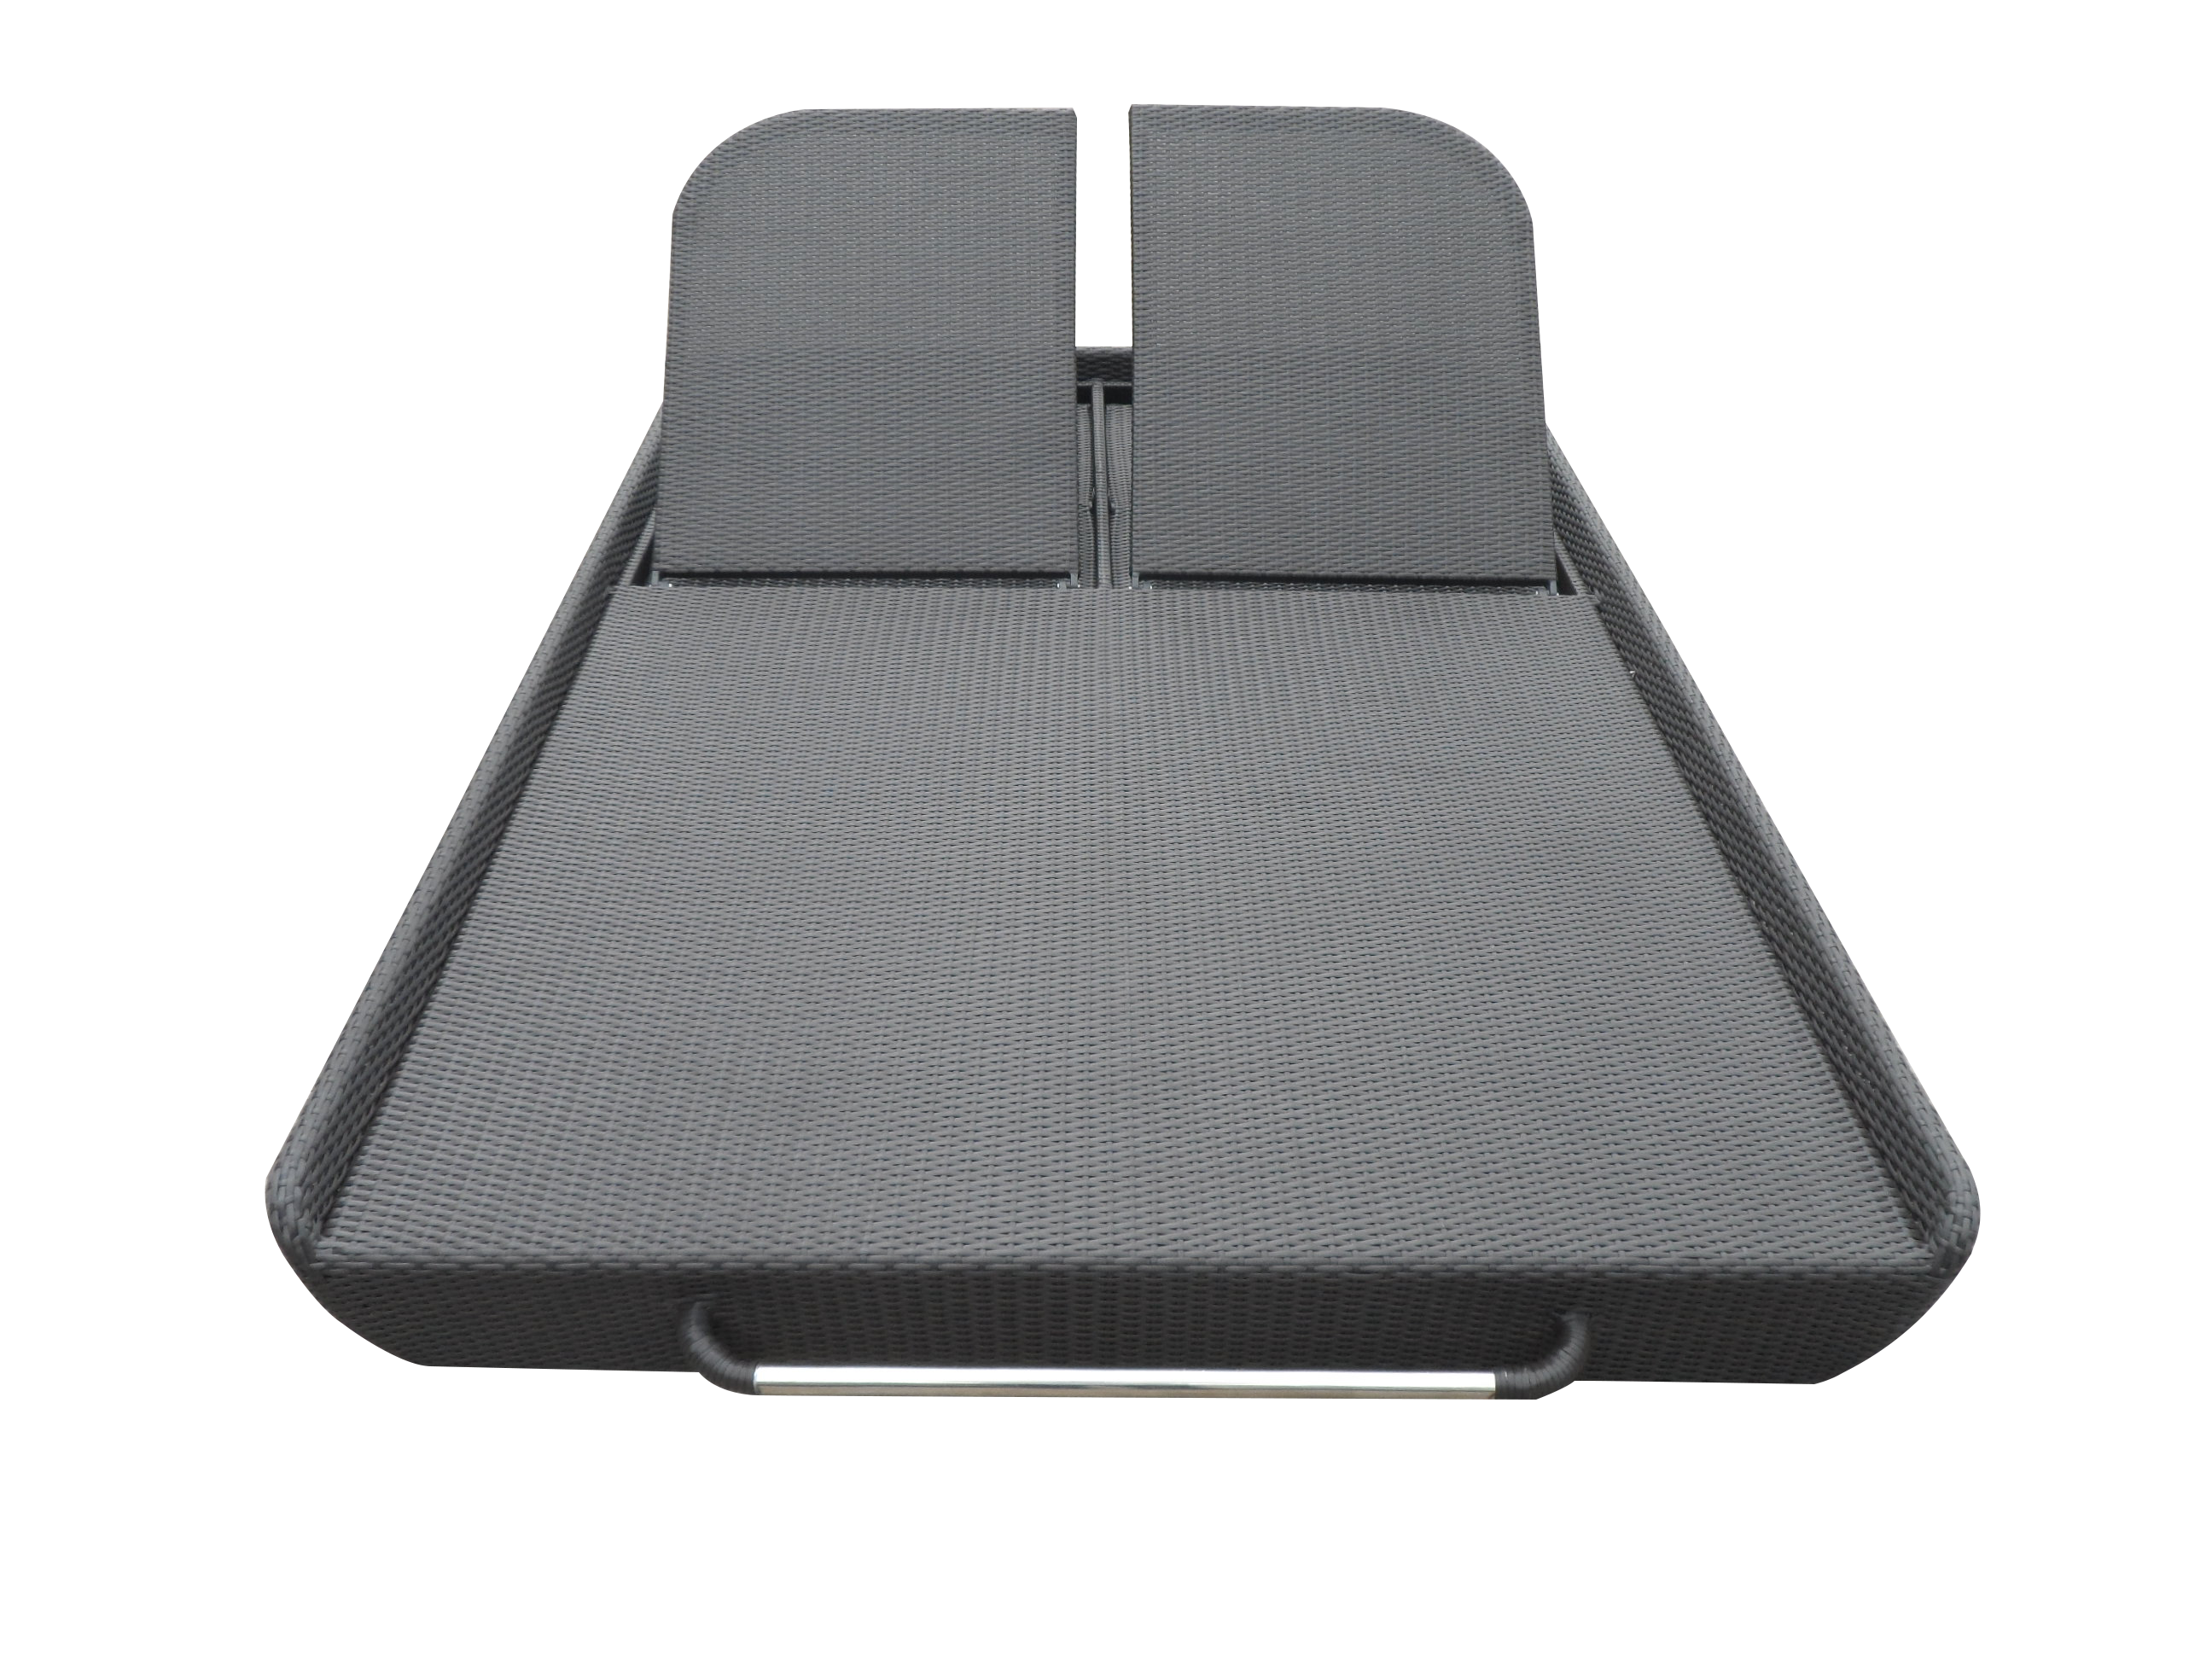 double rattan sun chaise lounger Manufacturers, double rattan sun chaise lounger Factory, Supply double rattan sun chaise lounger